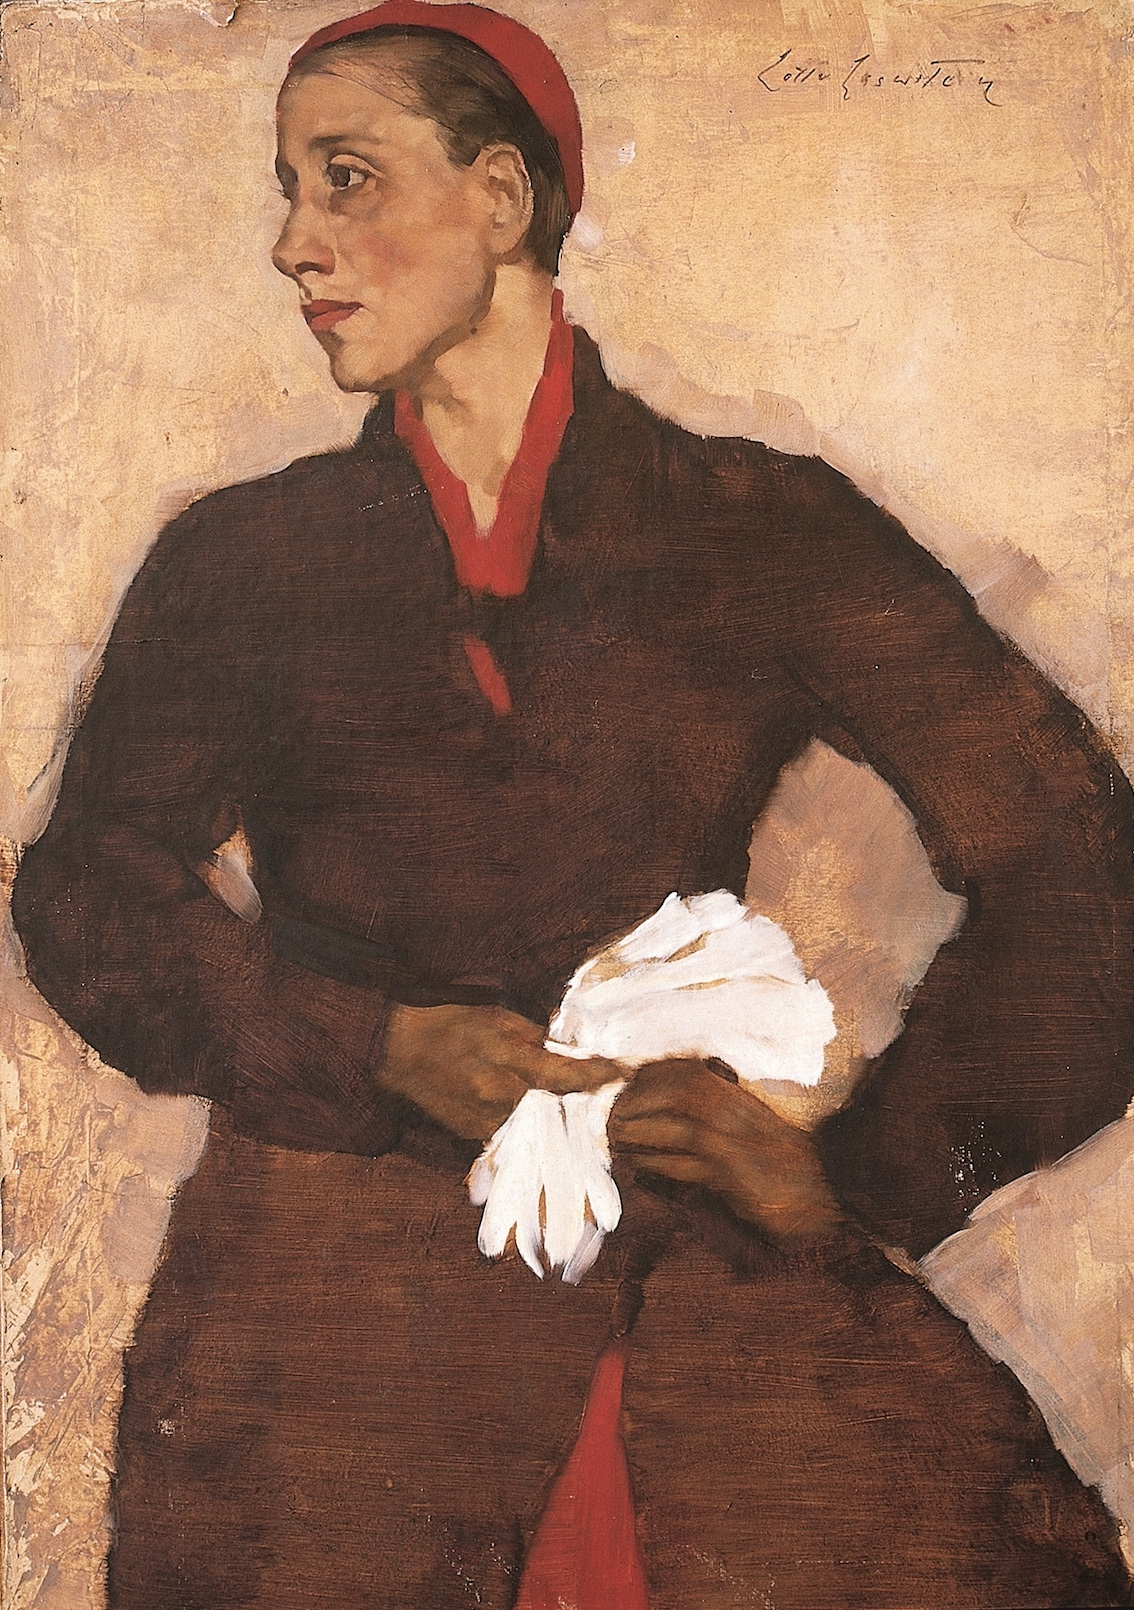 Traute Rose with white gloves – Lotte Laserstein